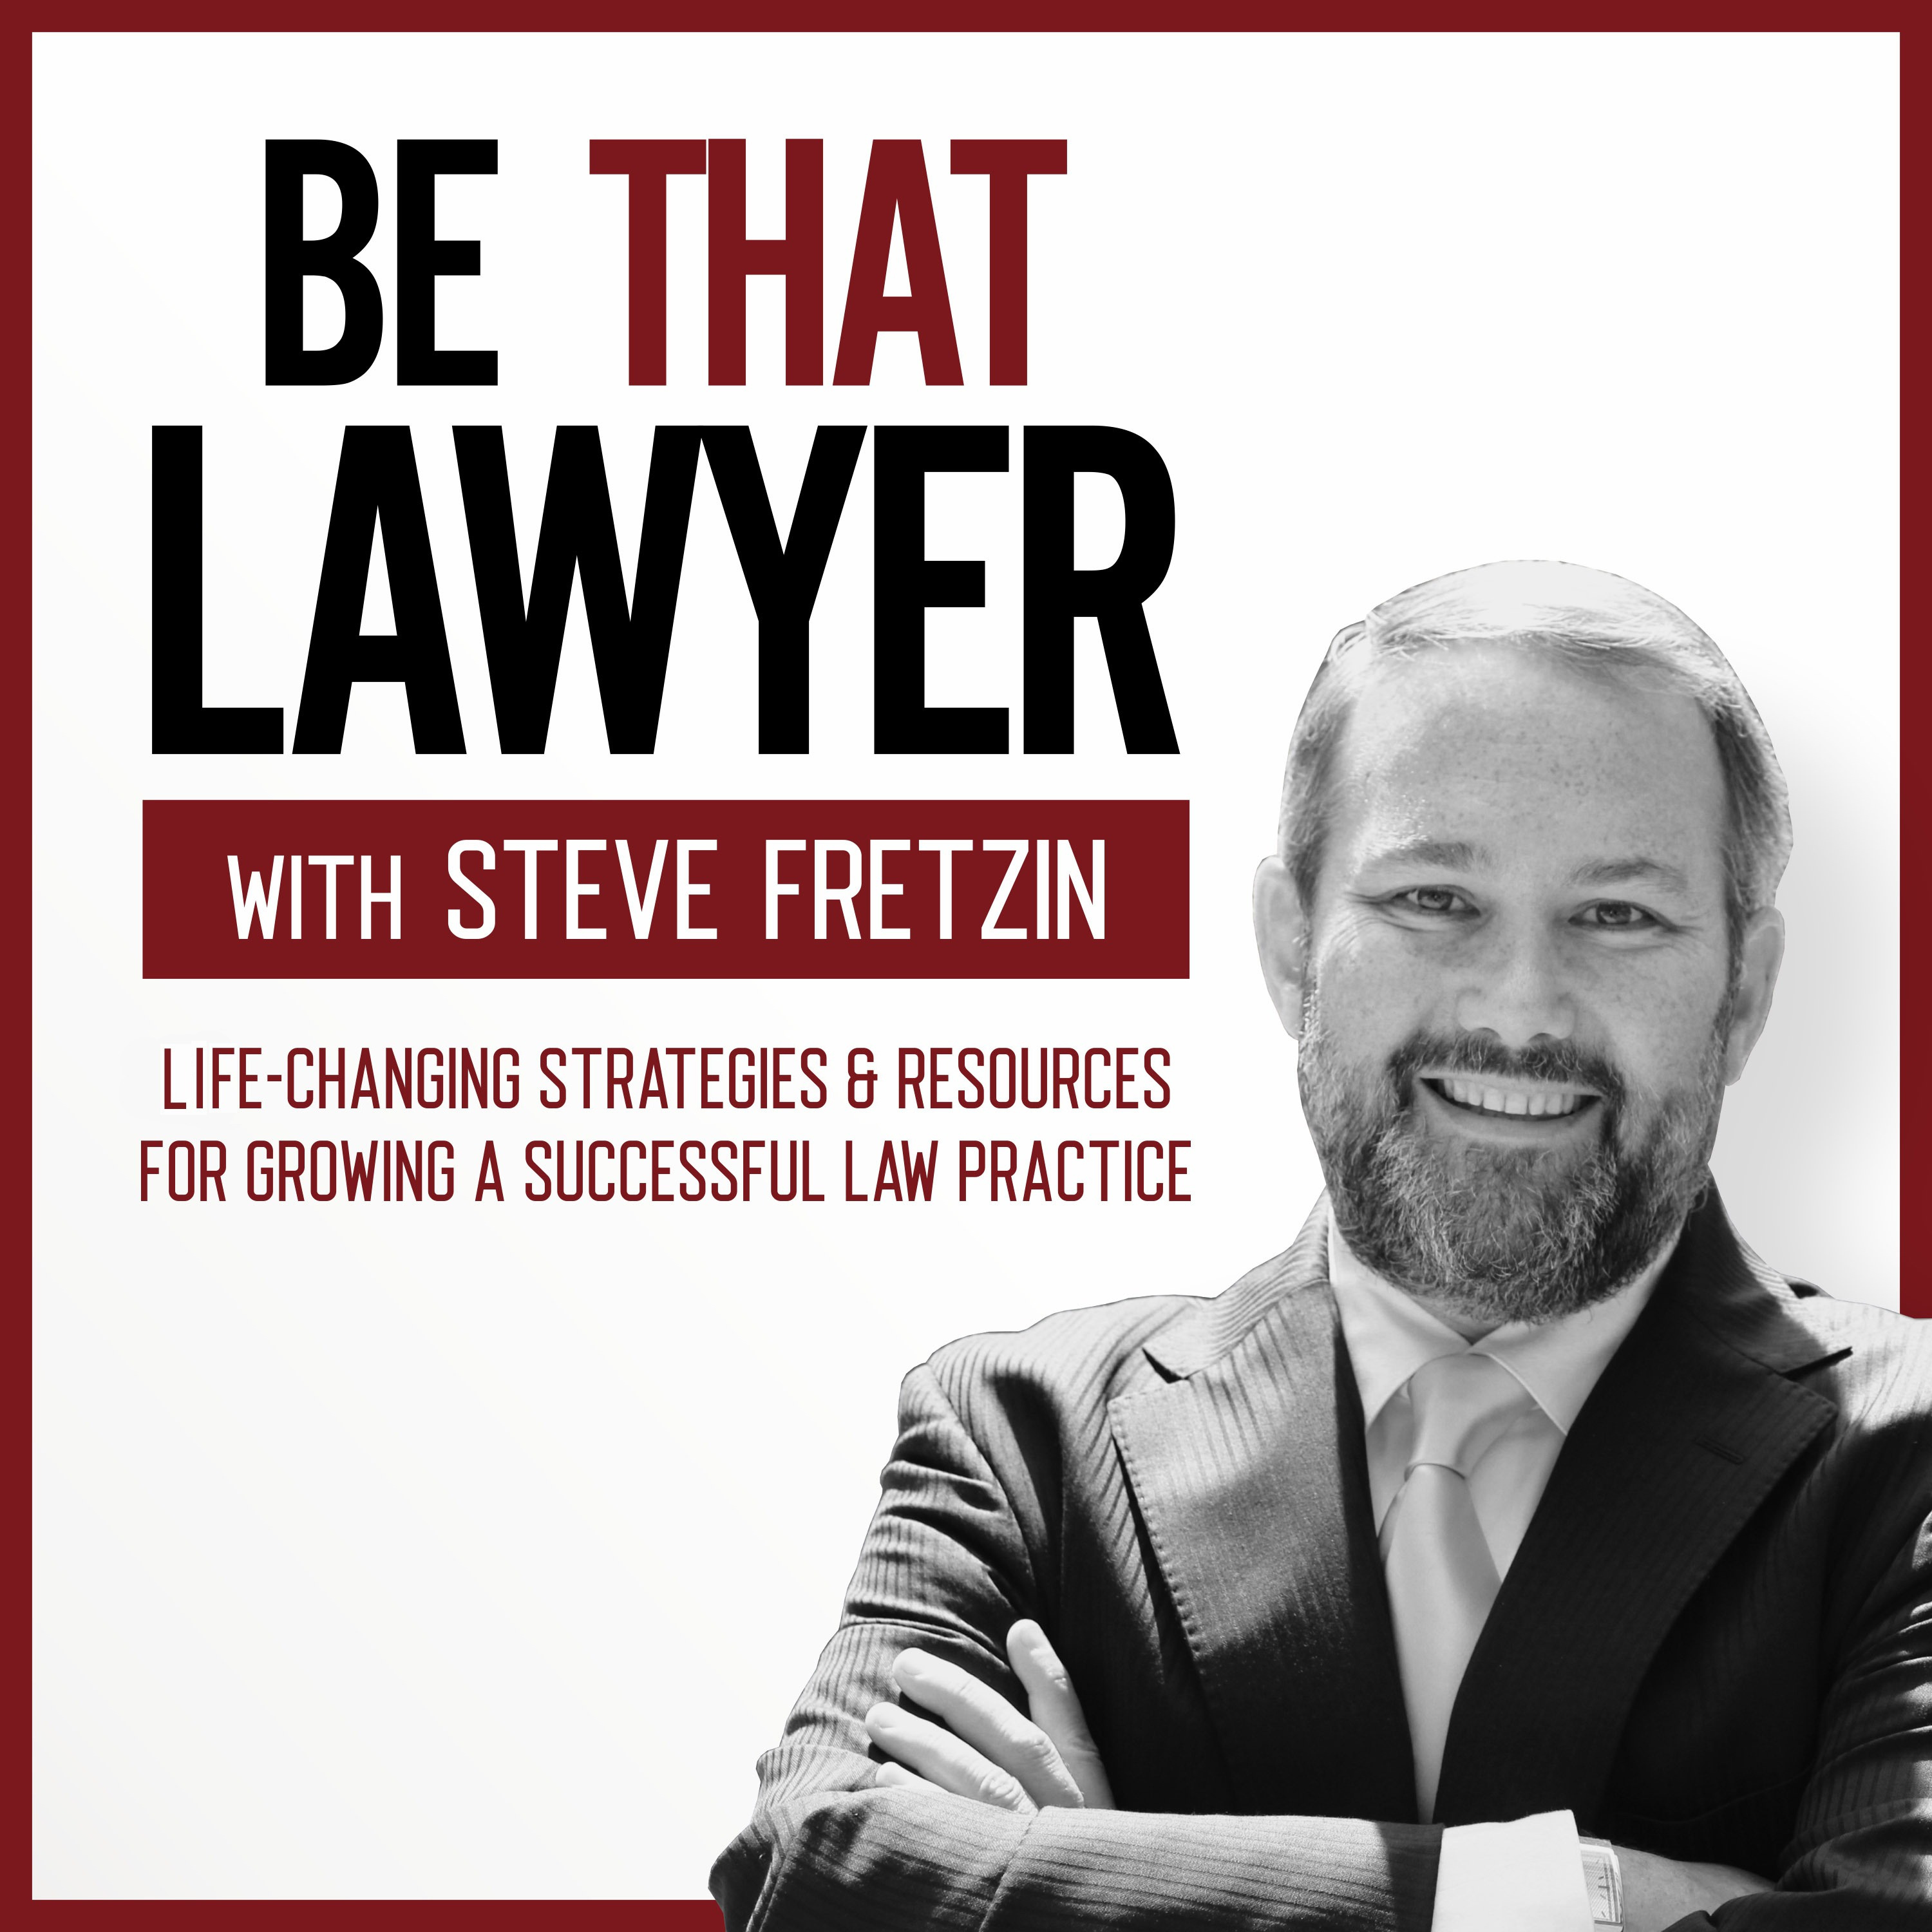 BE THAT LAWYER